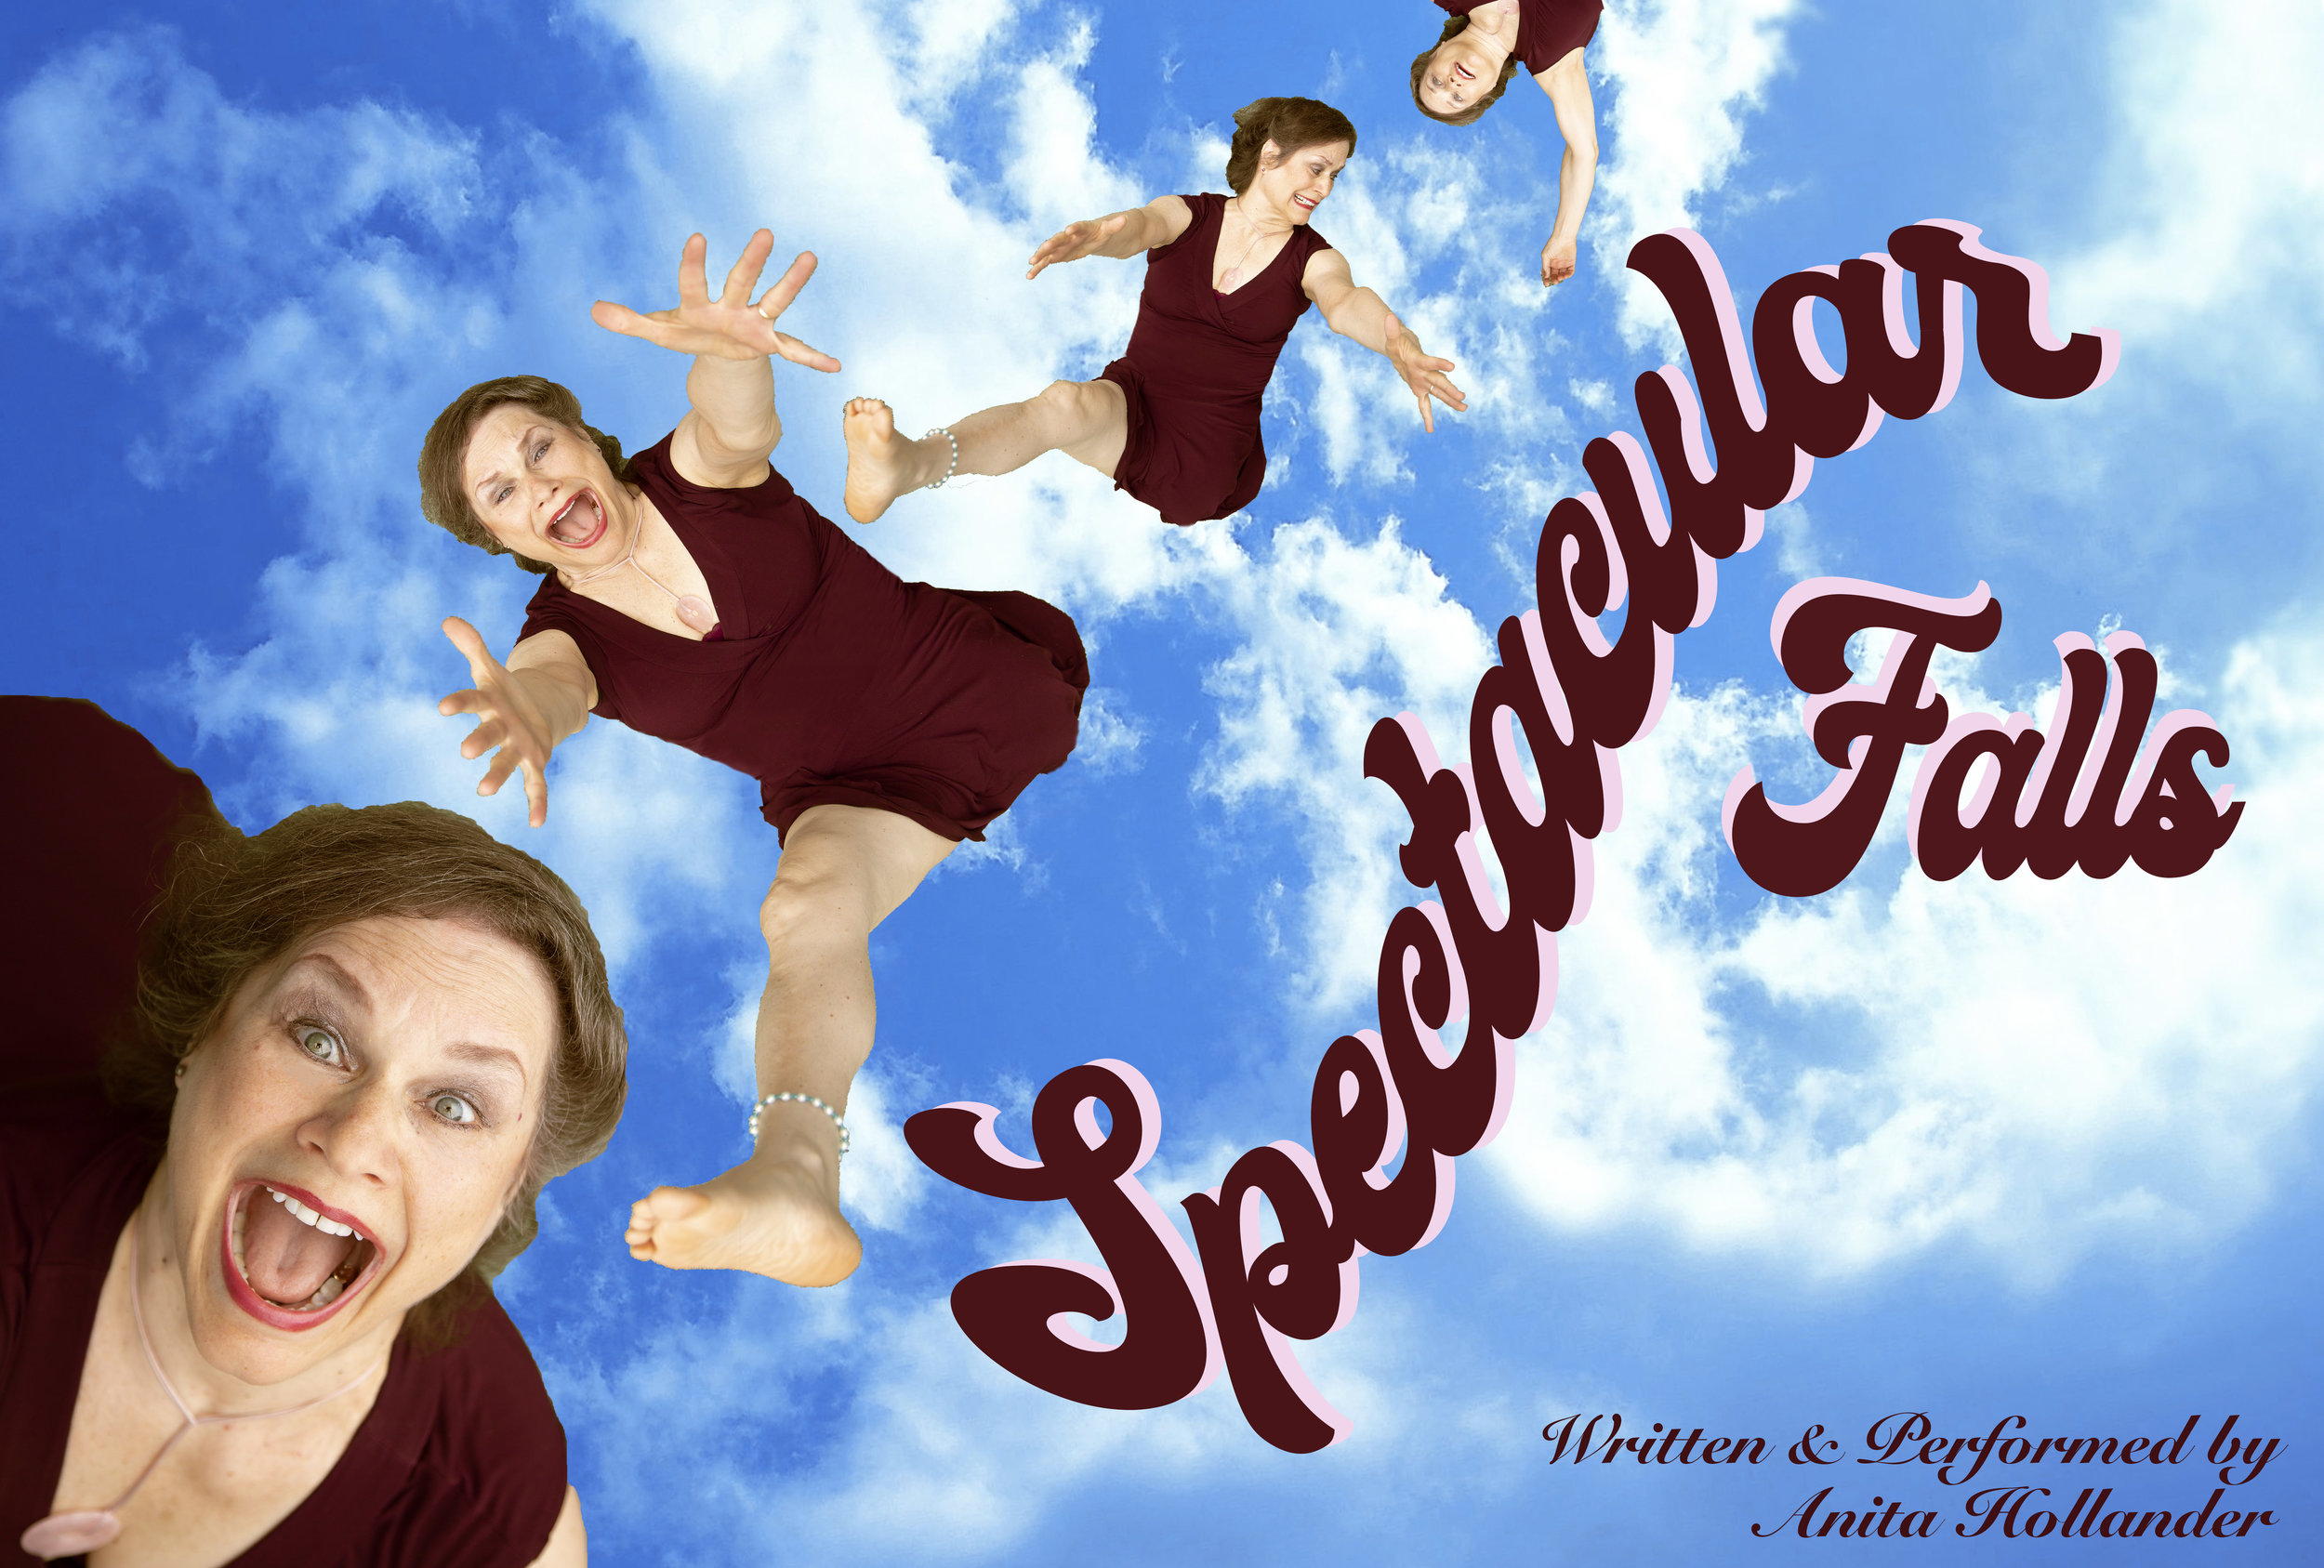 Click here for more information and tickets to Anita's show Spectacular Falls, coming to the 2019 United Solo Festival on September 23rd, 2019!